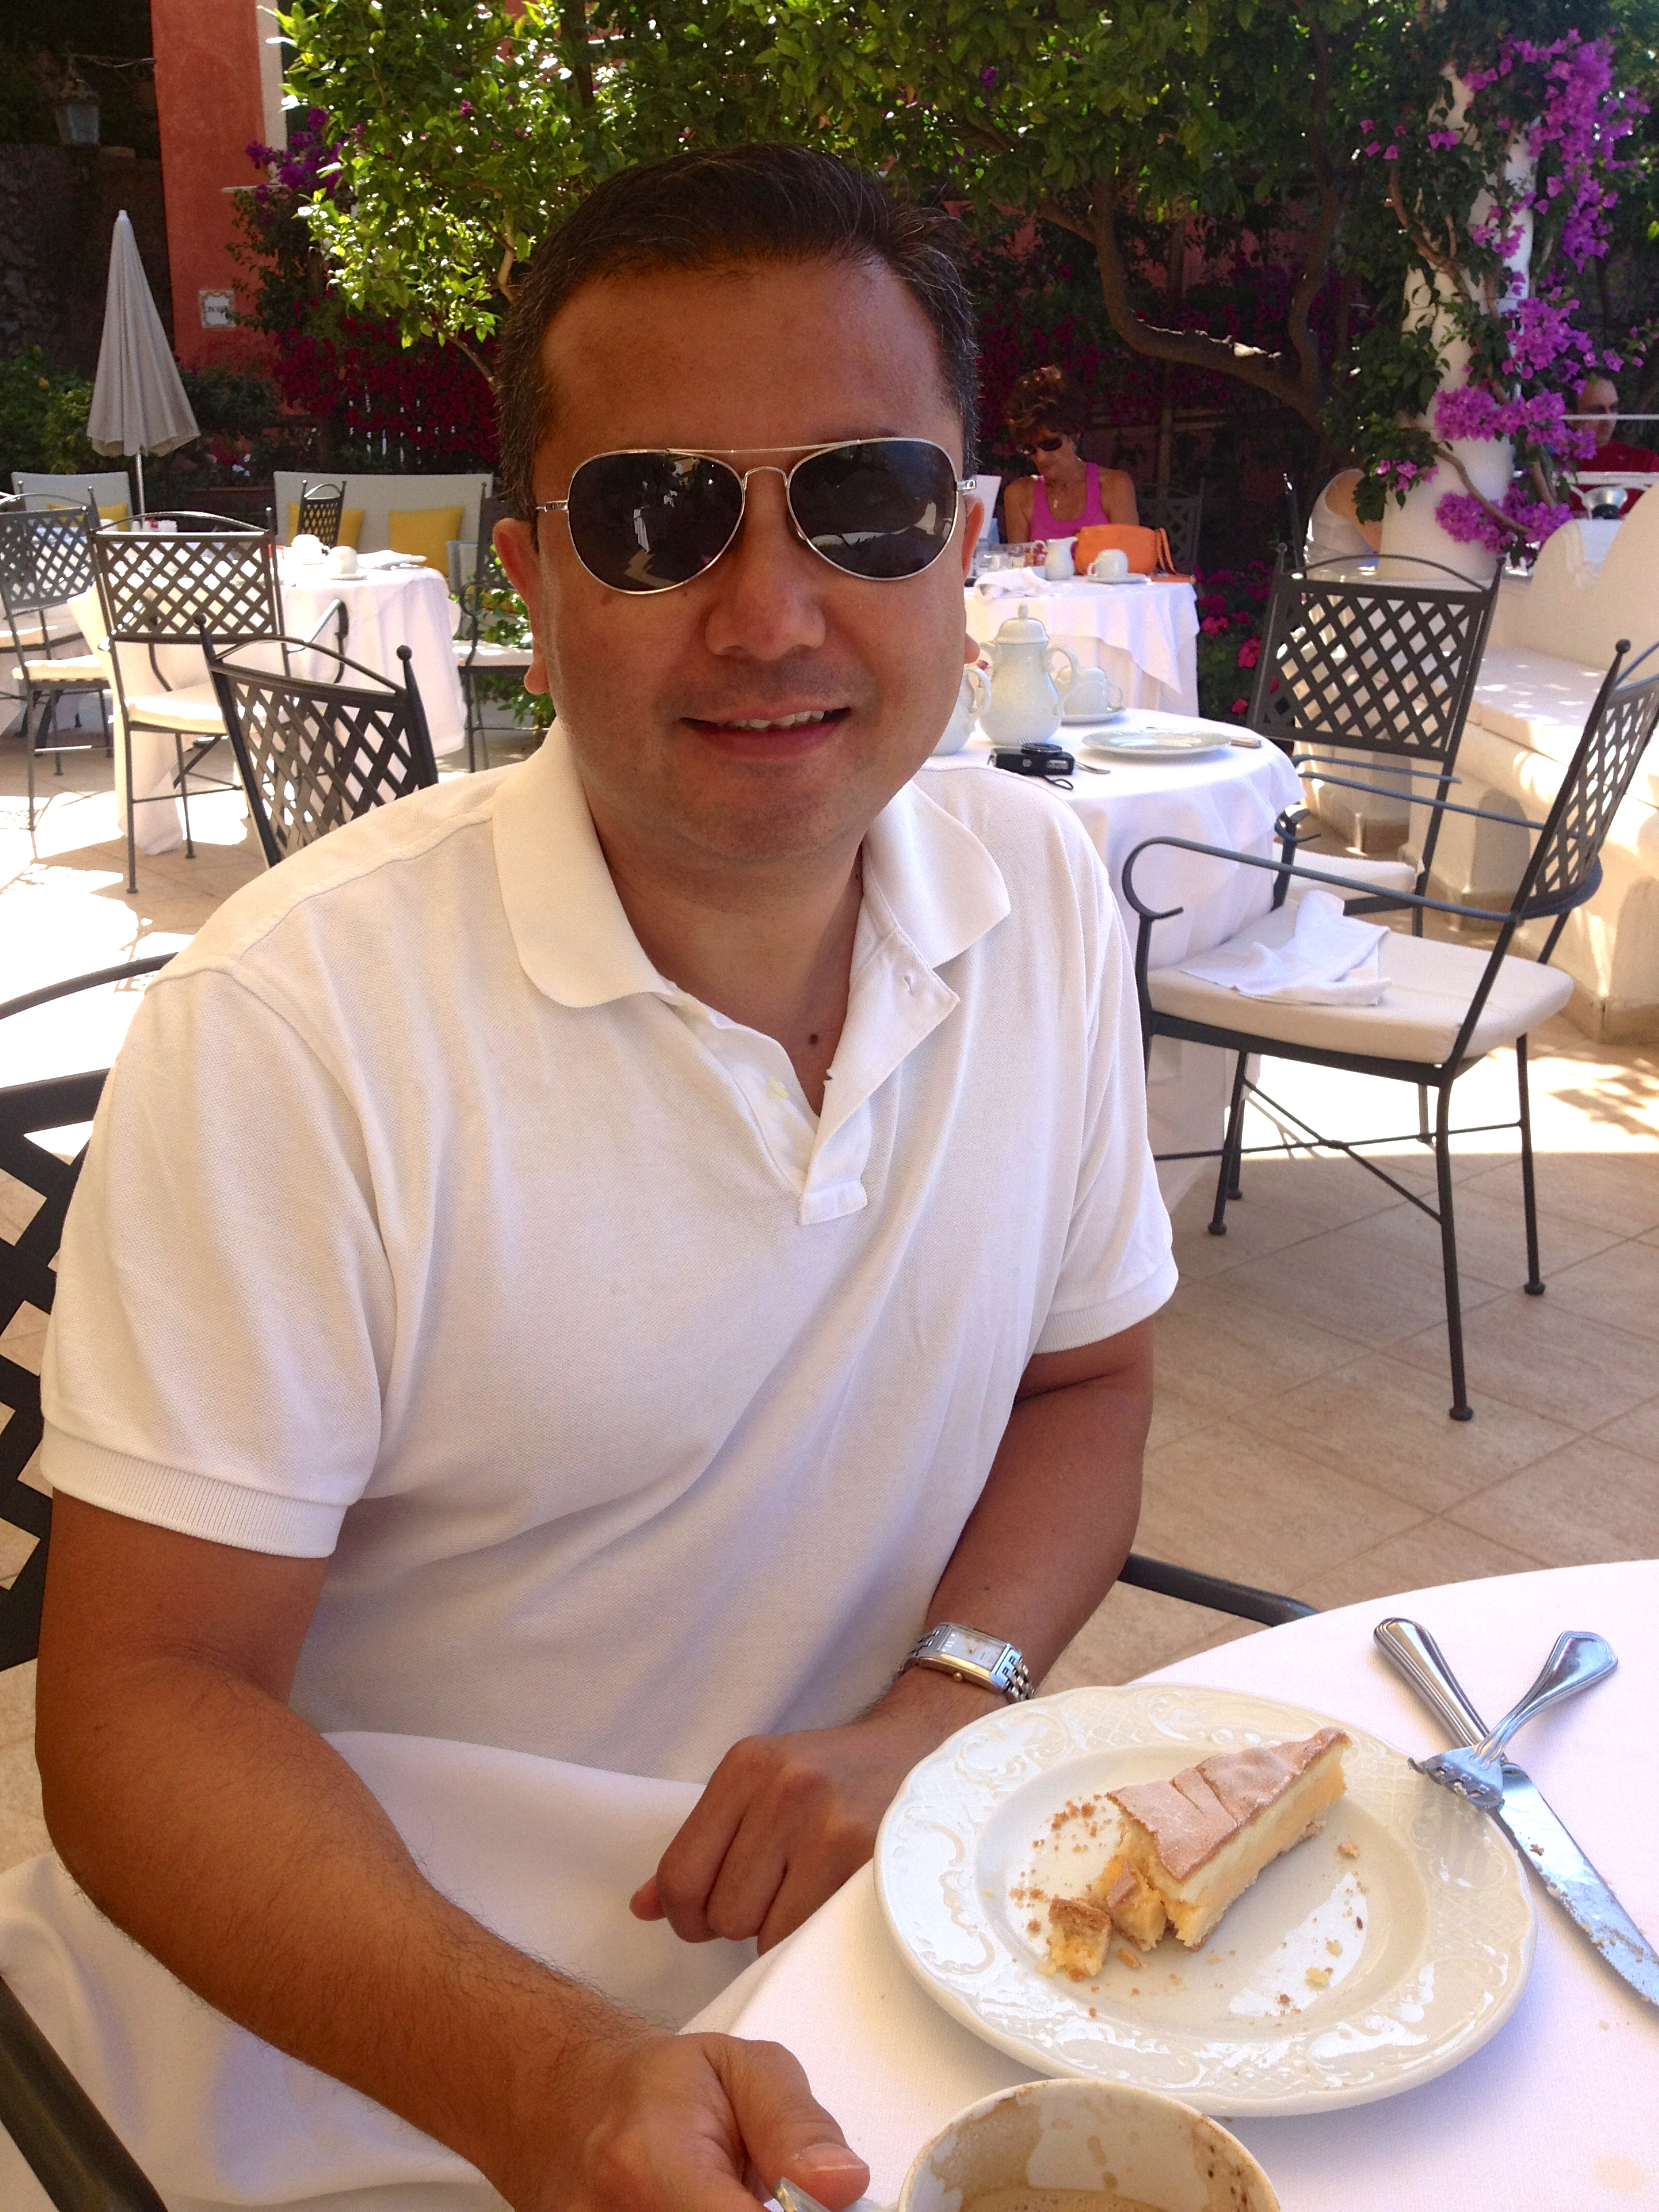 Hotel Marincanto Positano Breakfast in Sunglasses